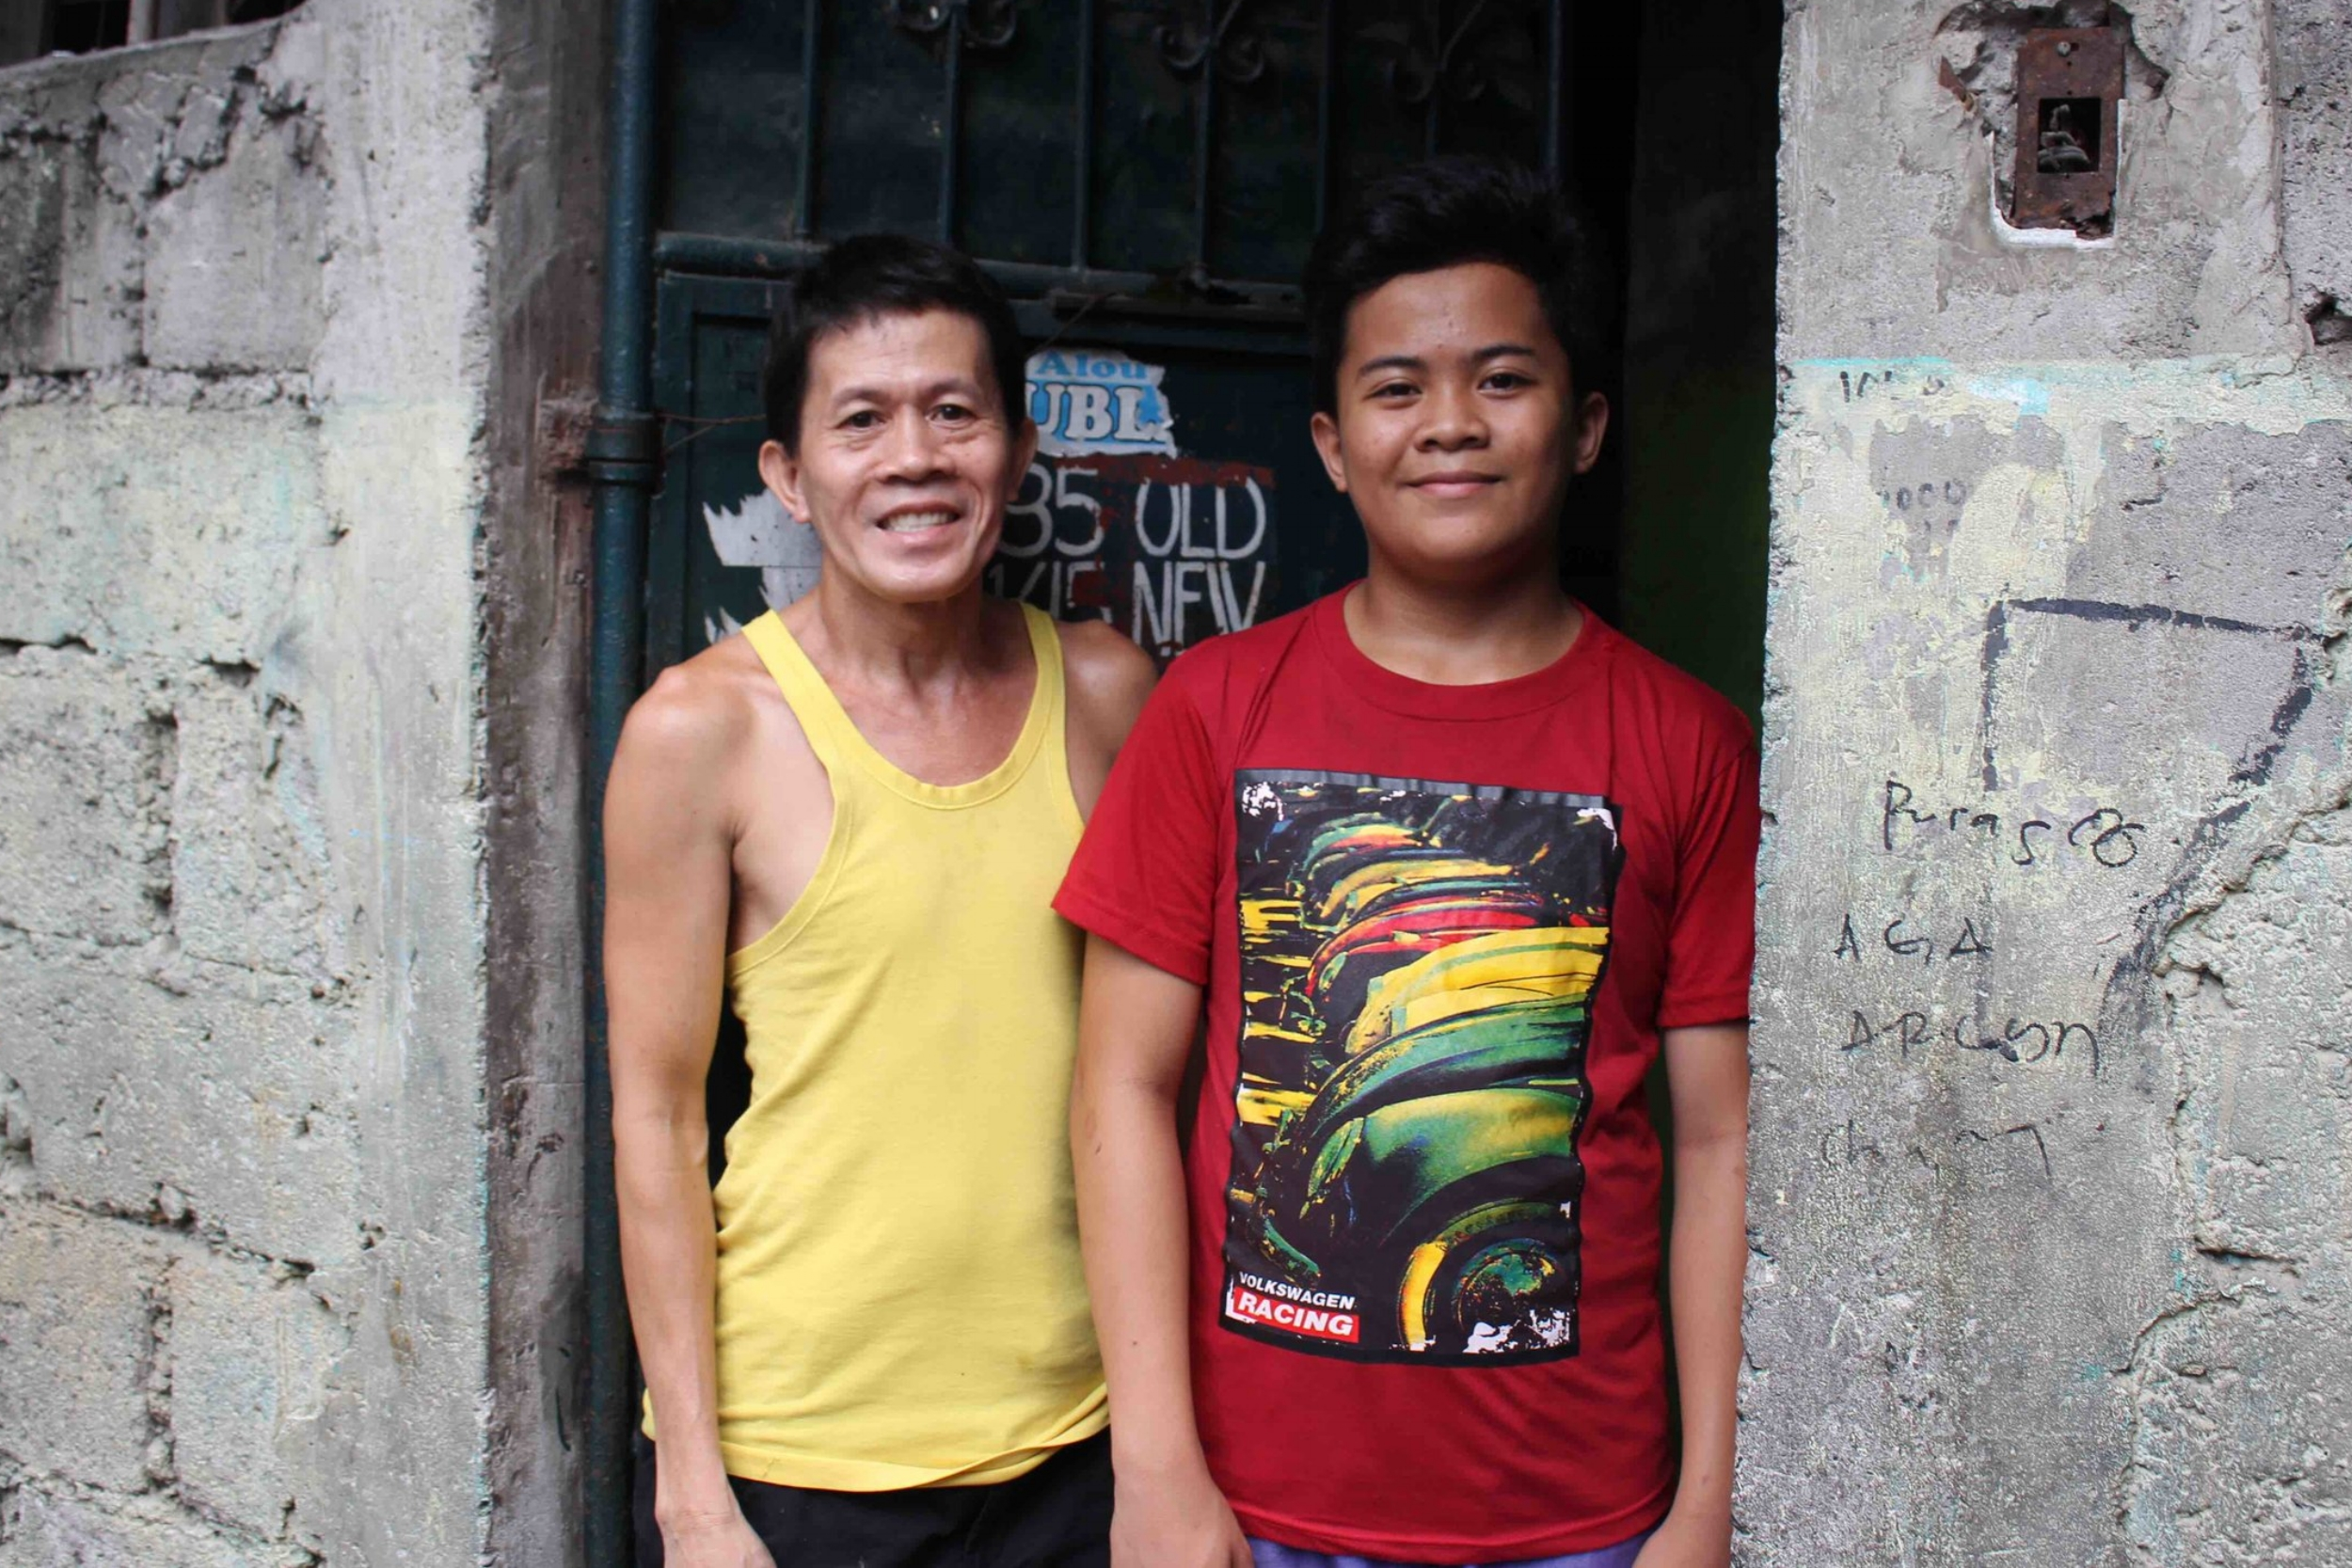 Jhobelle with his father, Sisenando